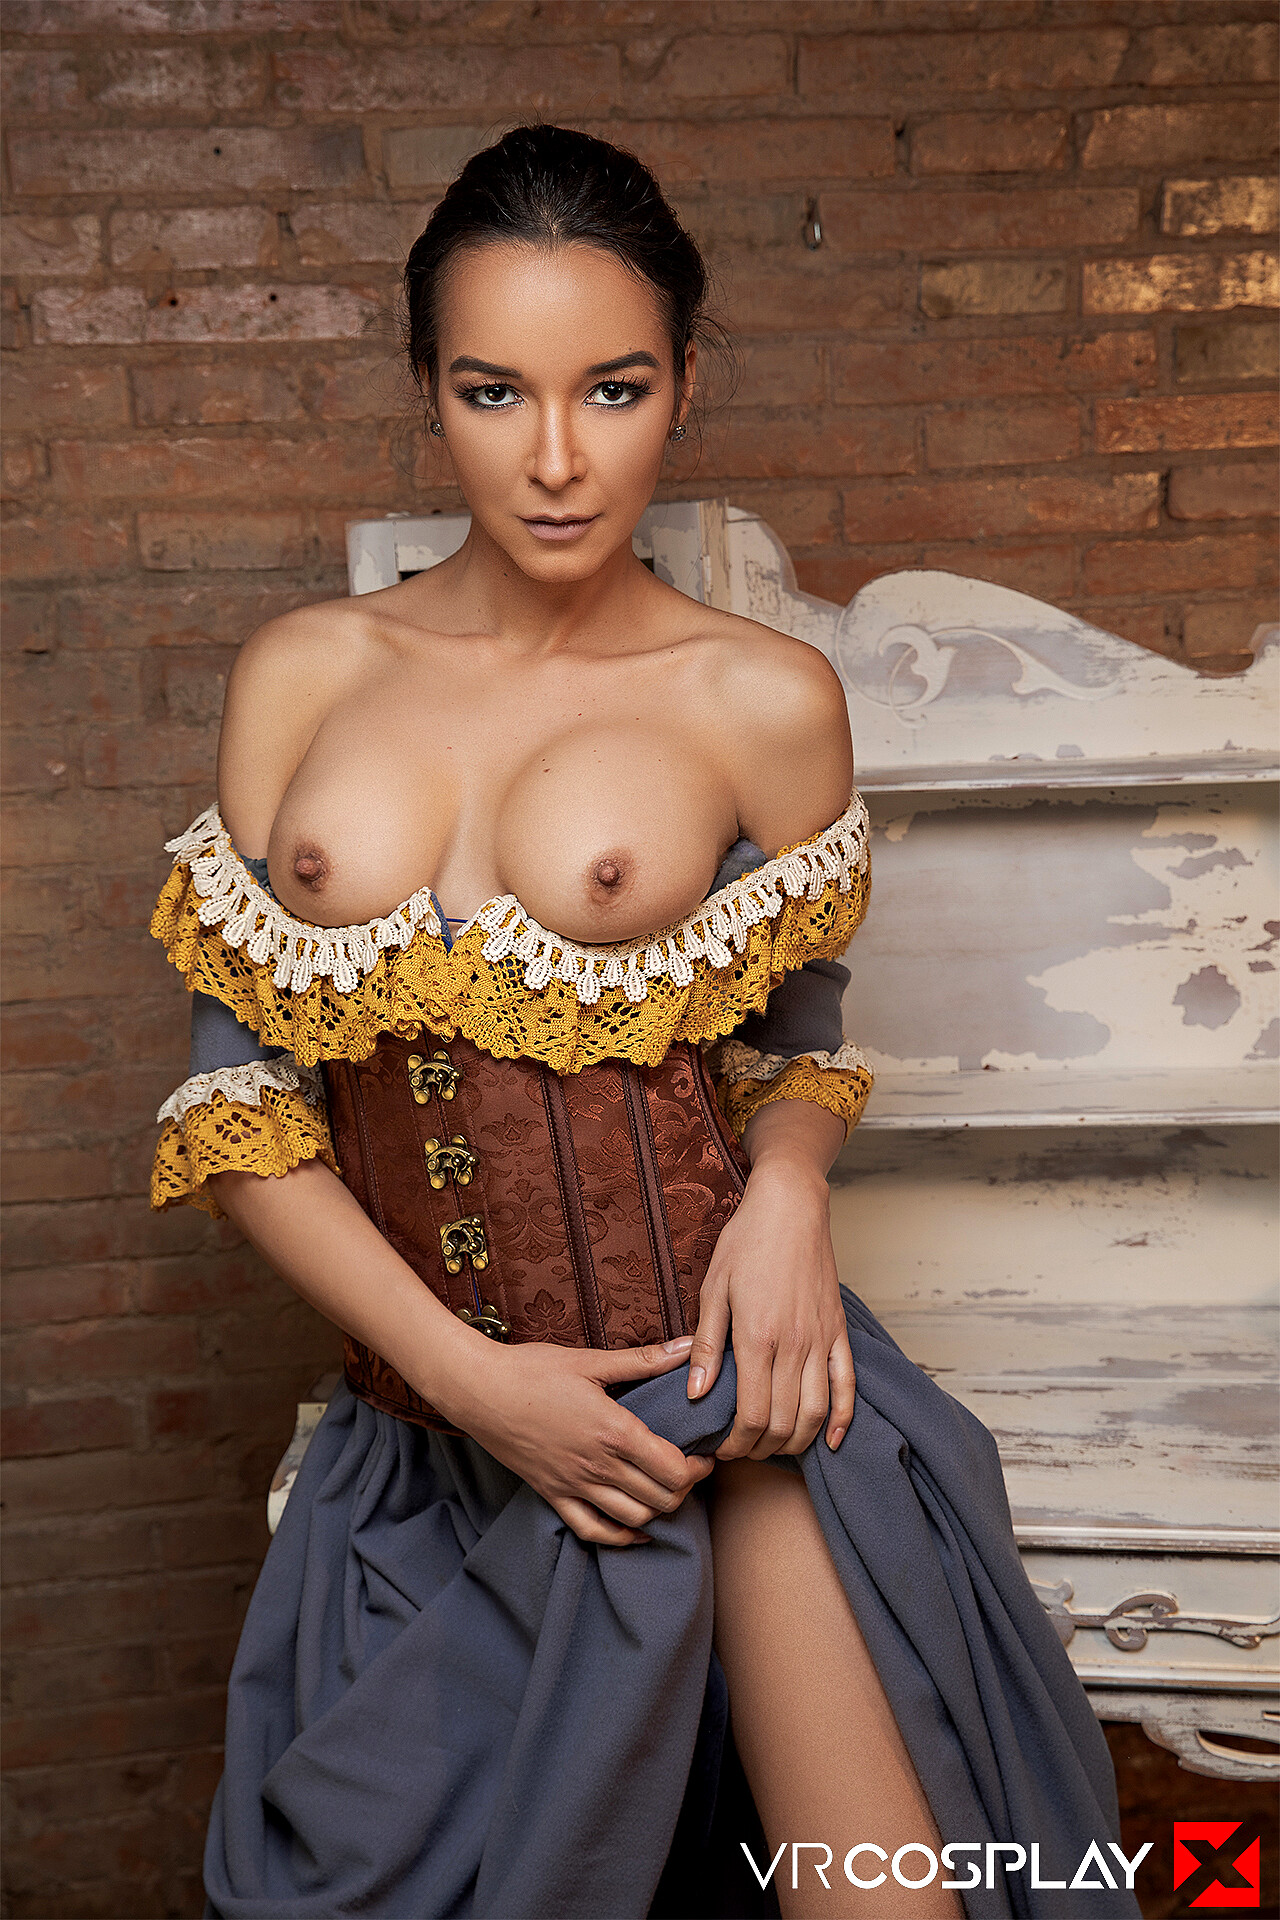 Cowgirl cosplay porn